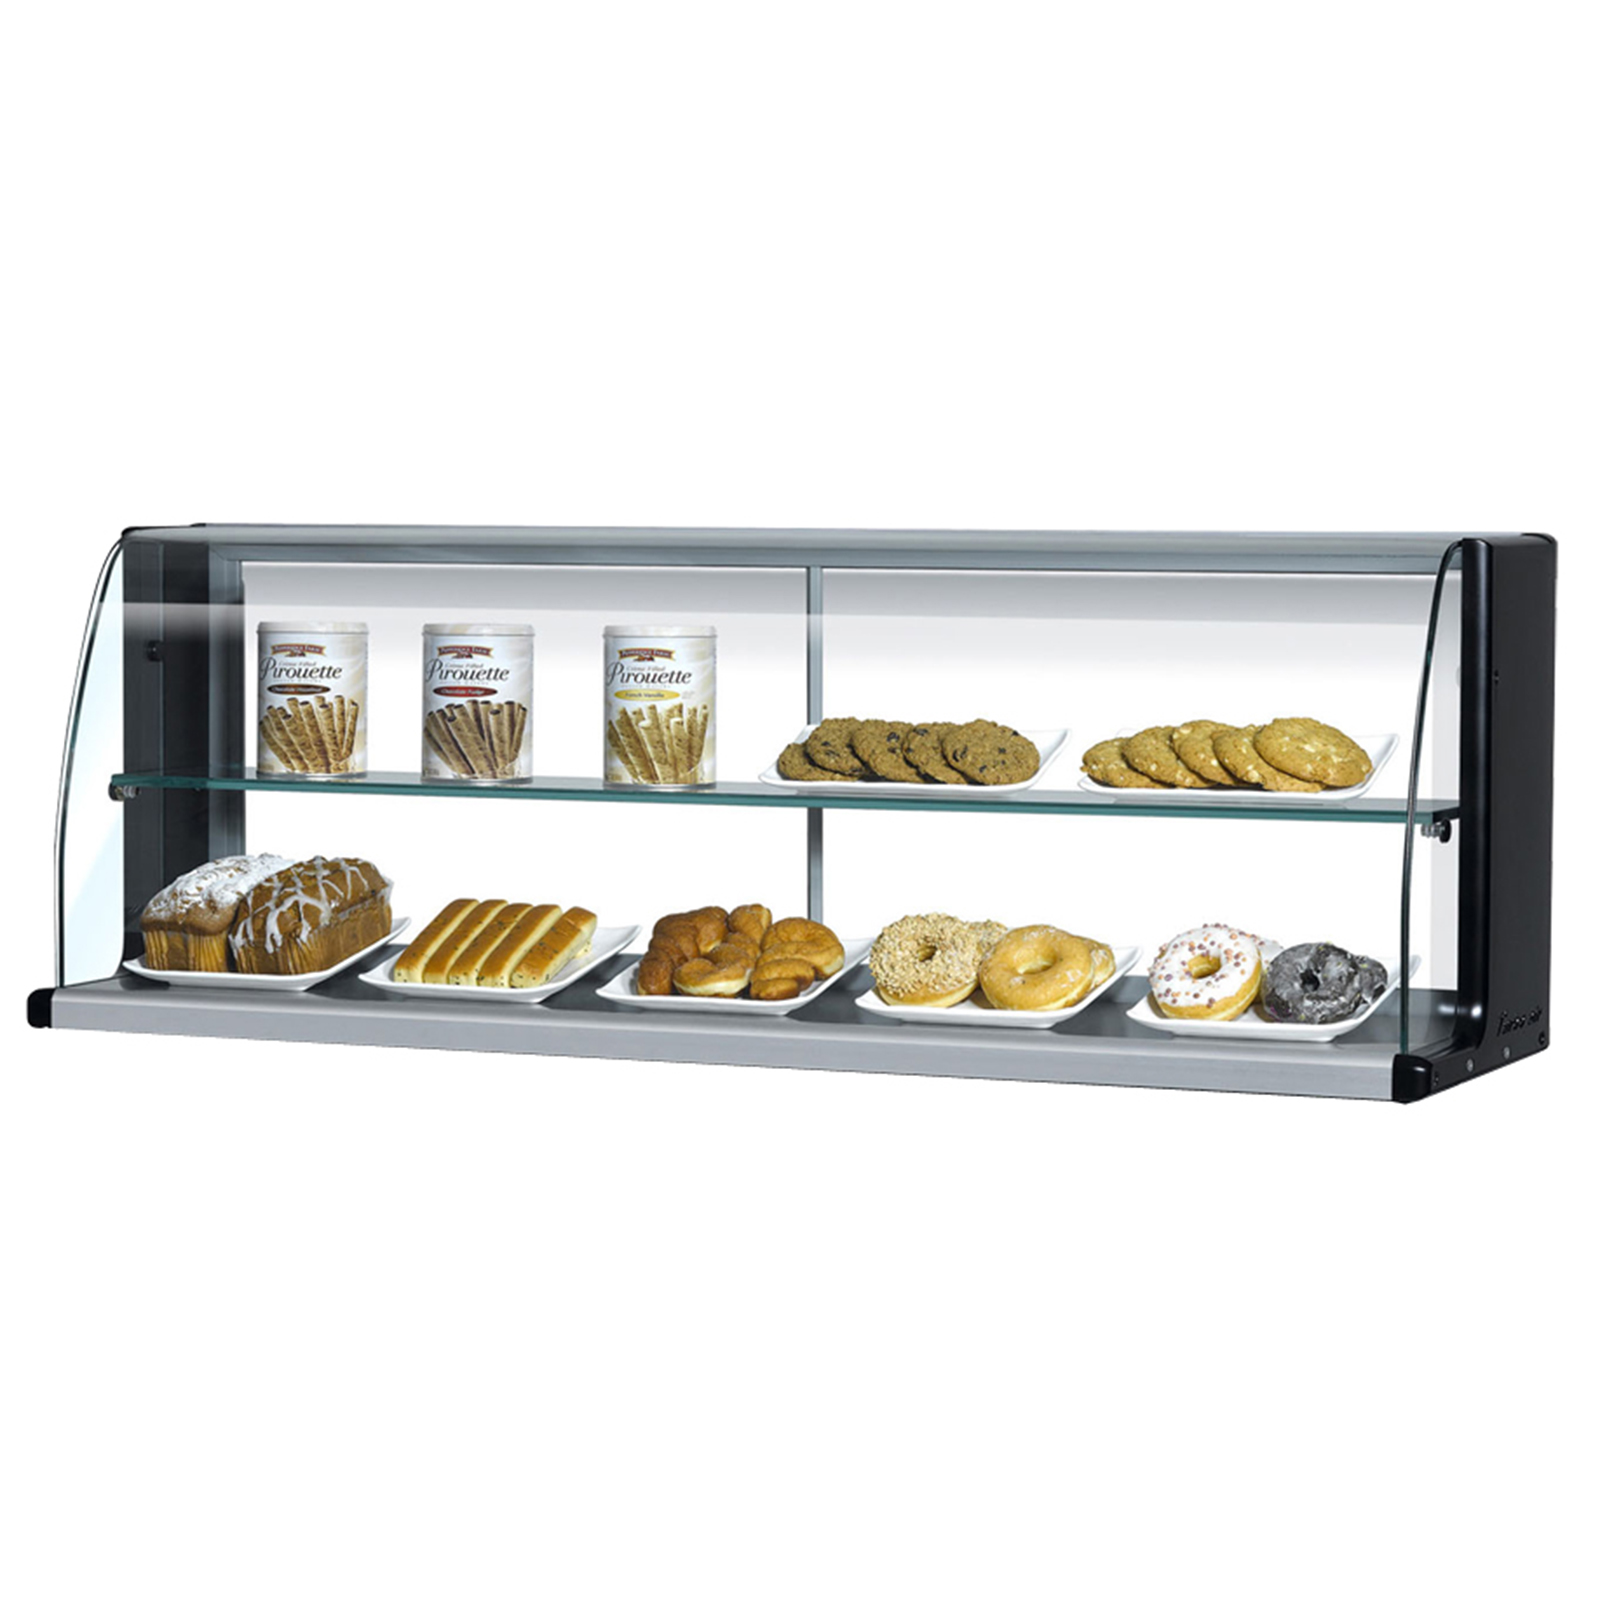 Turbo Air TOMD-40HW display case, non-refrigerated countertop